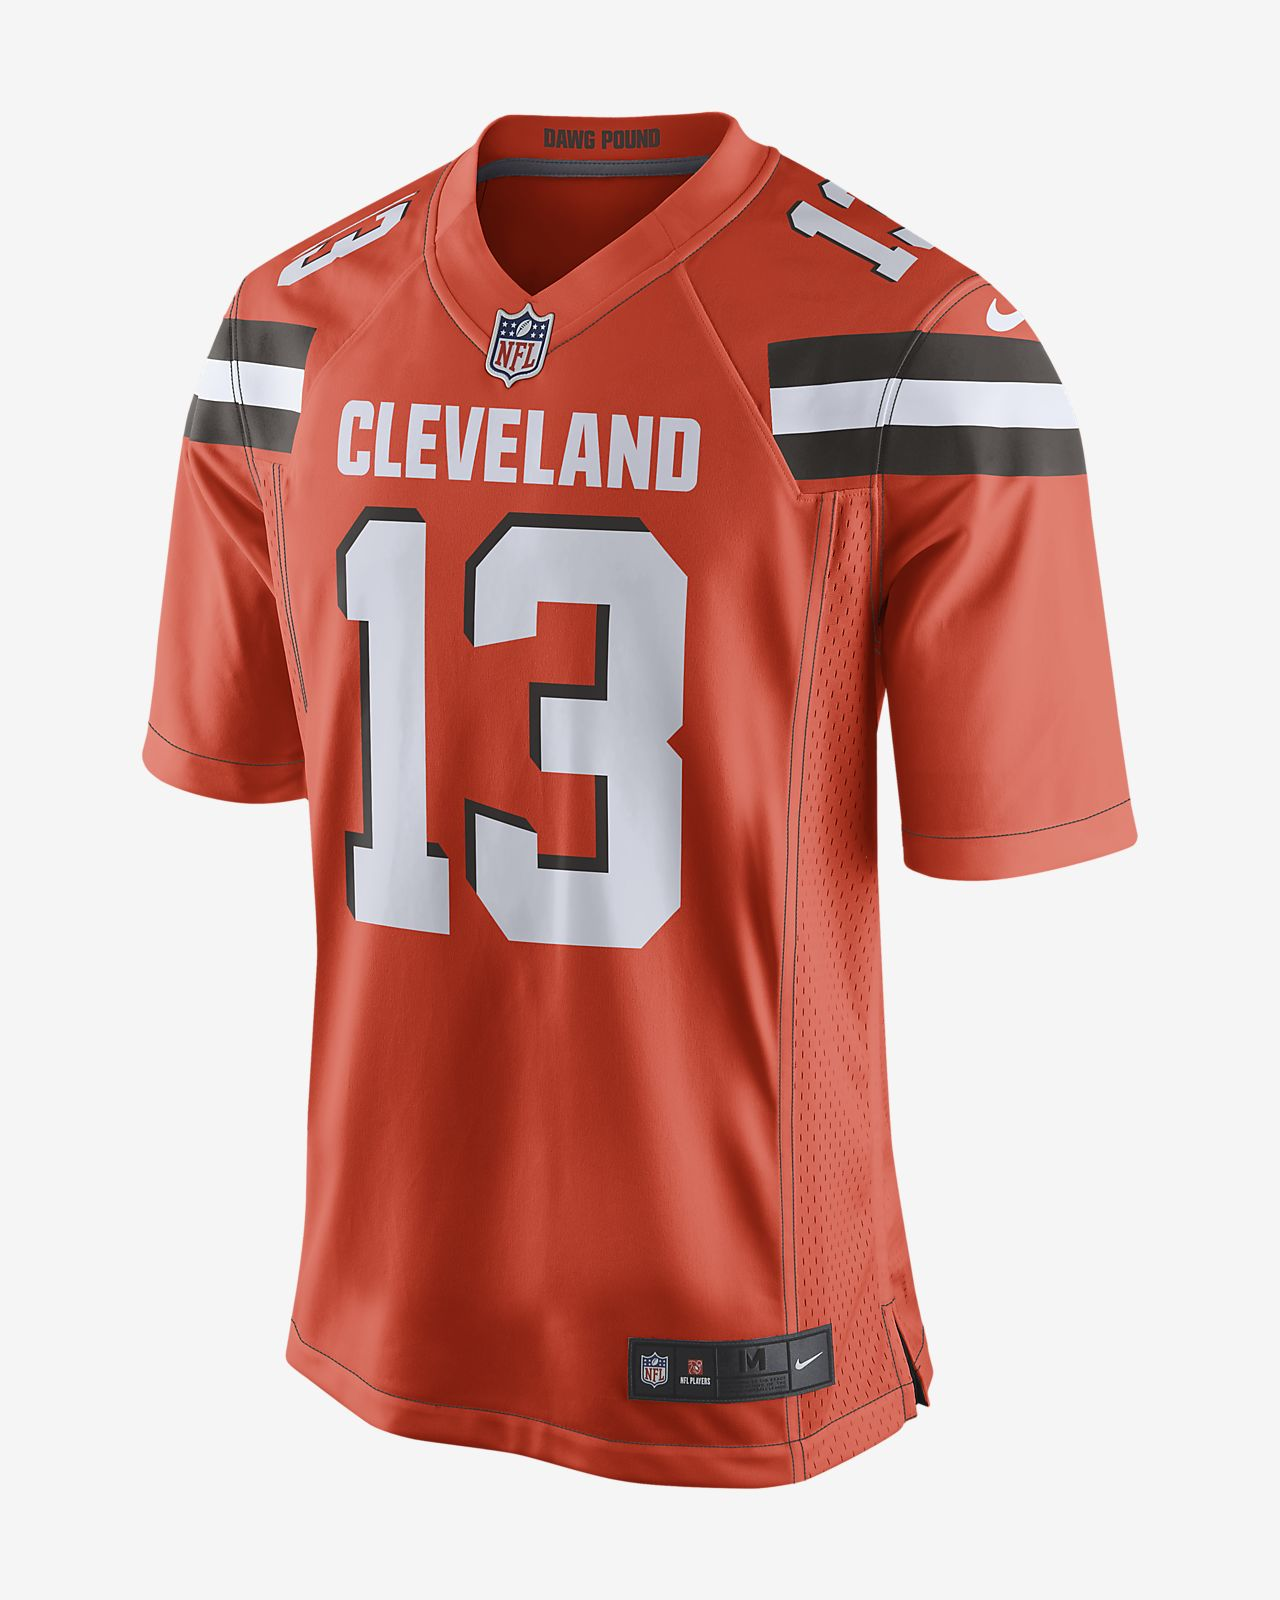 free shipping b8d91 2d352 NFL Cleveland Browns (Odell Beckham Jr.) Men's Game Football Jersey